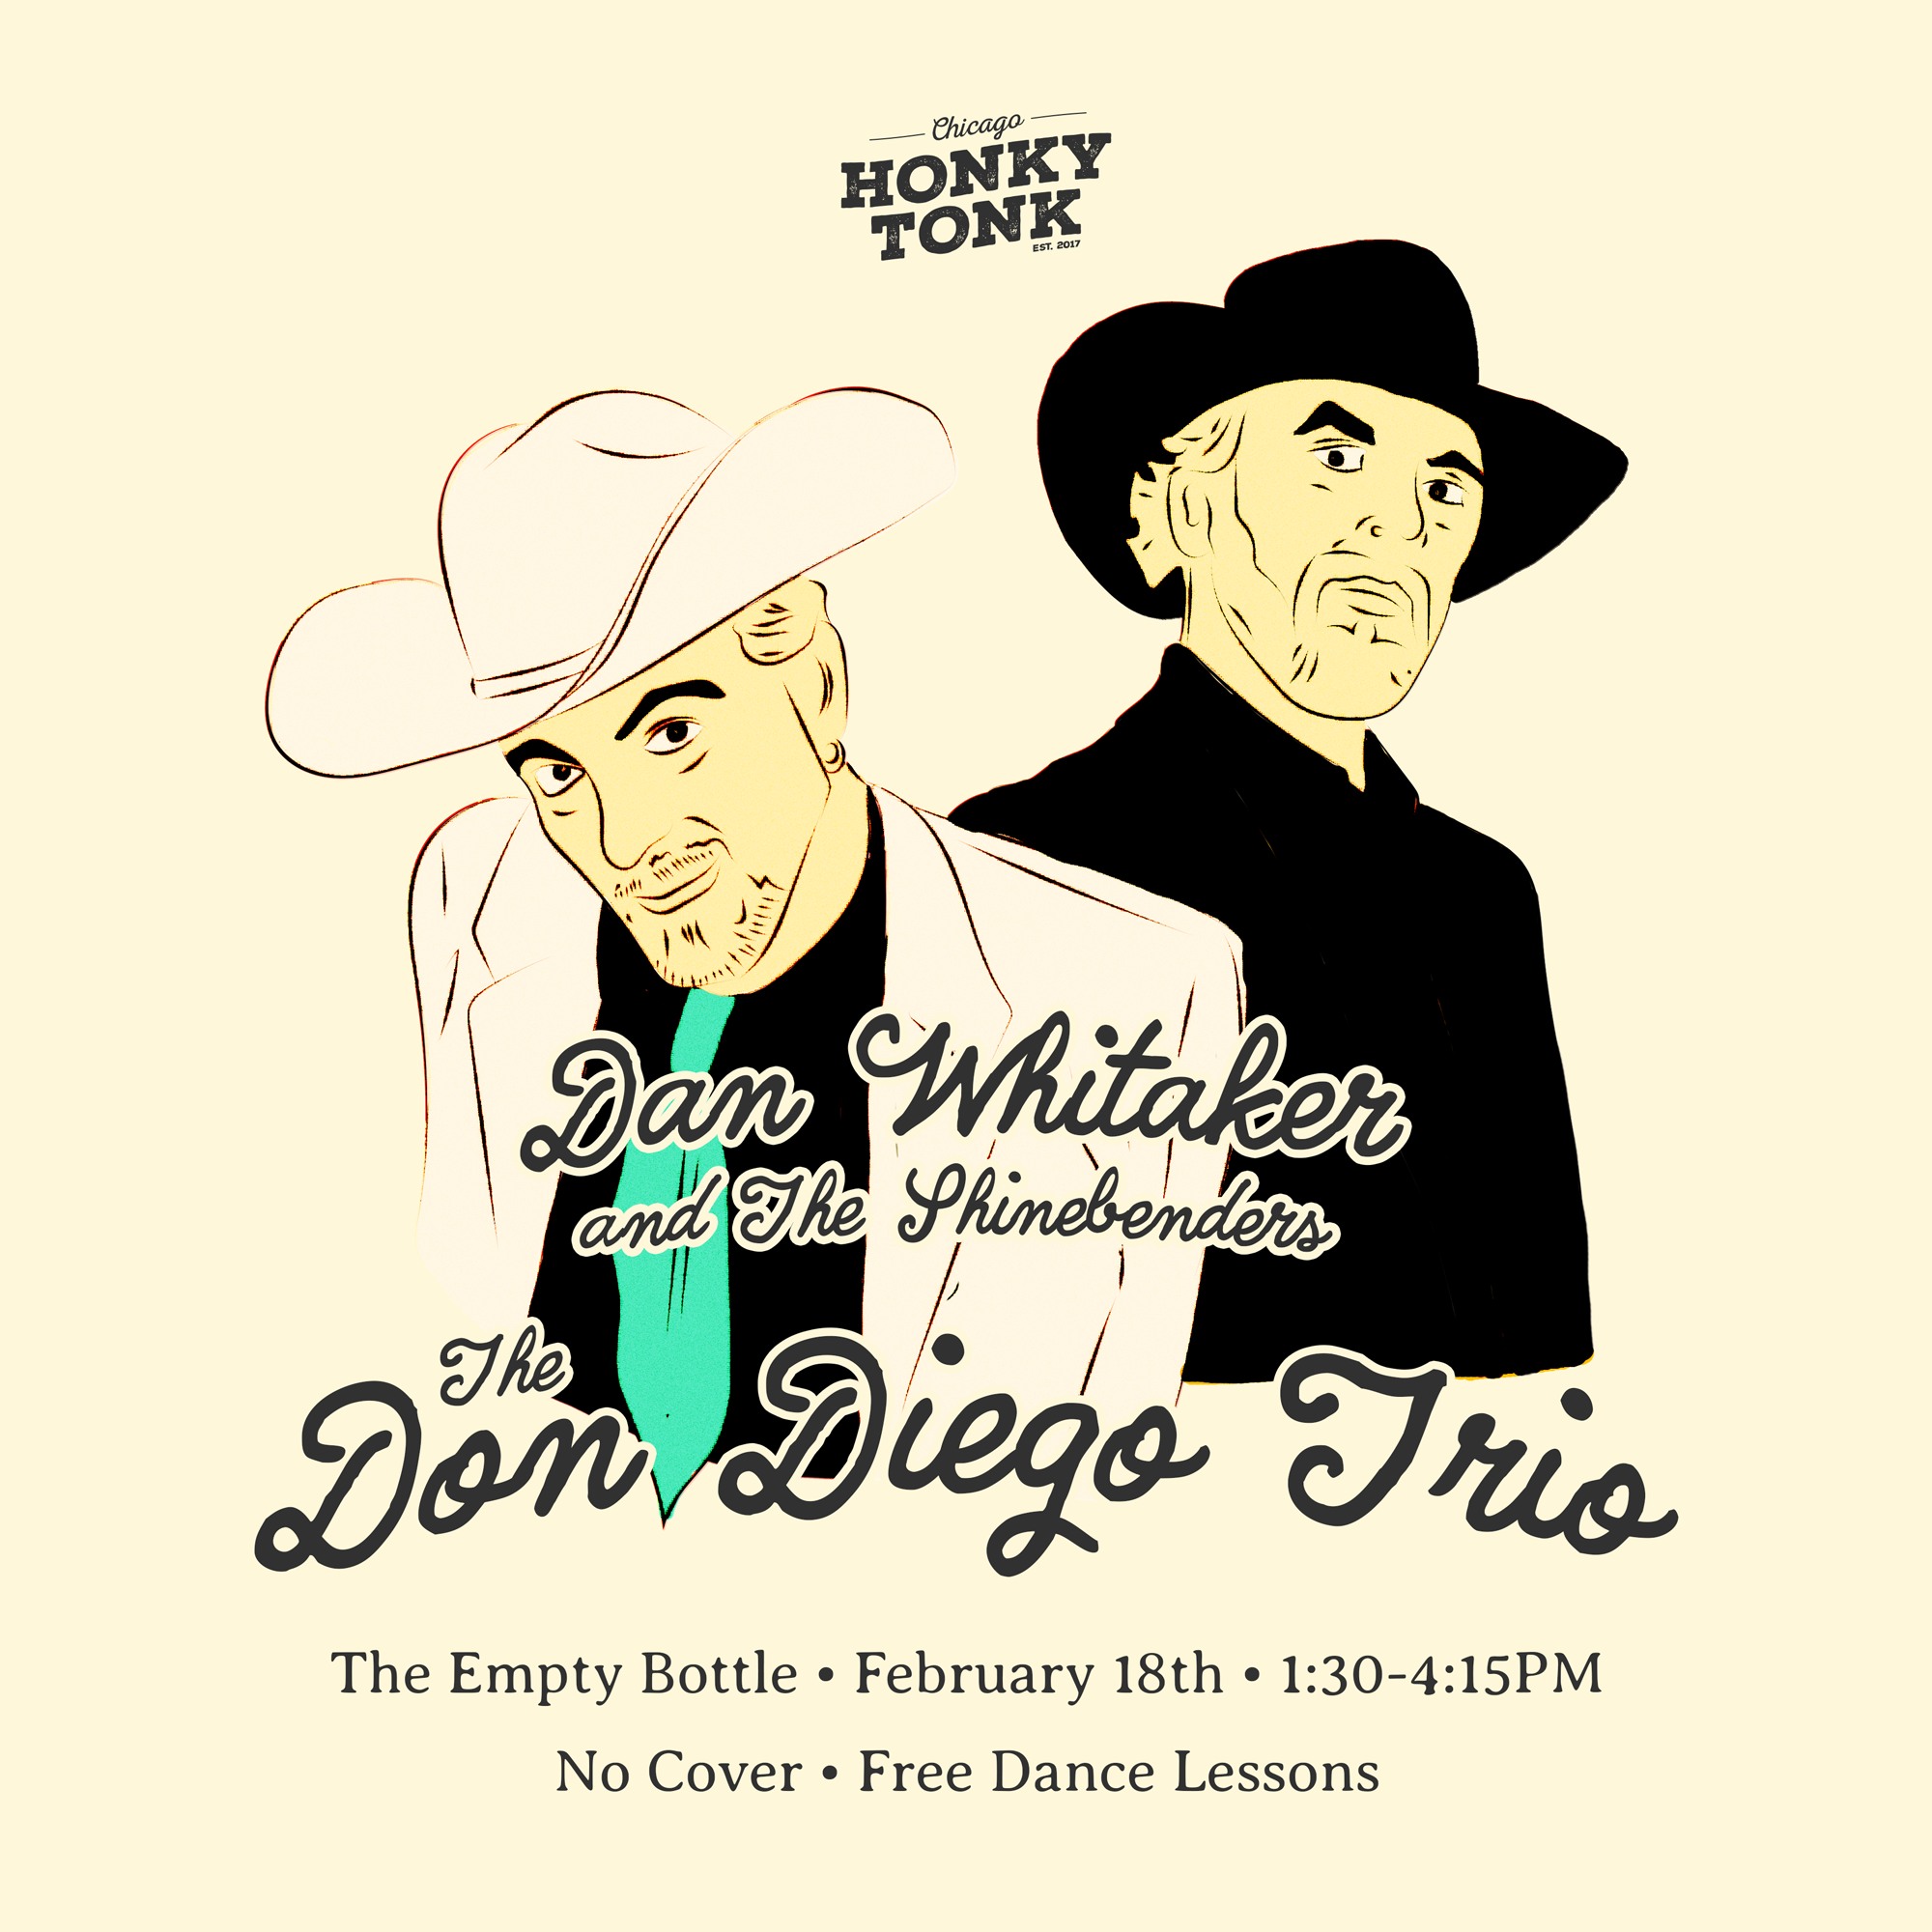 Chicago Honky Tonk presents Don Diego Trio an